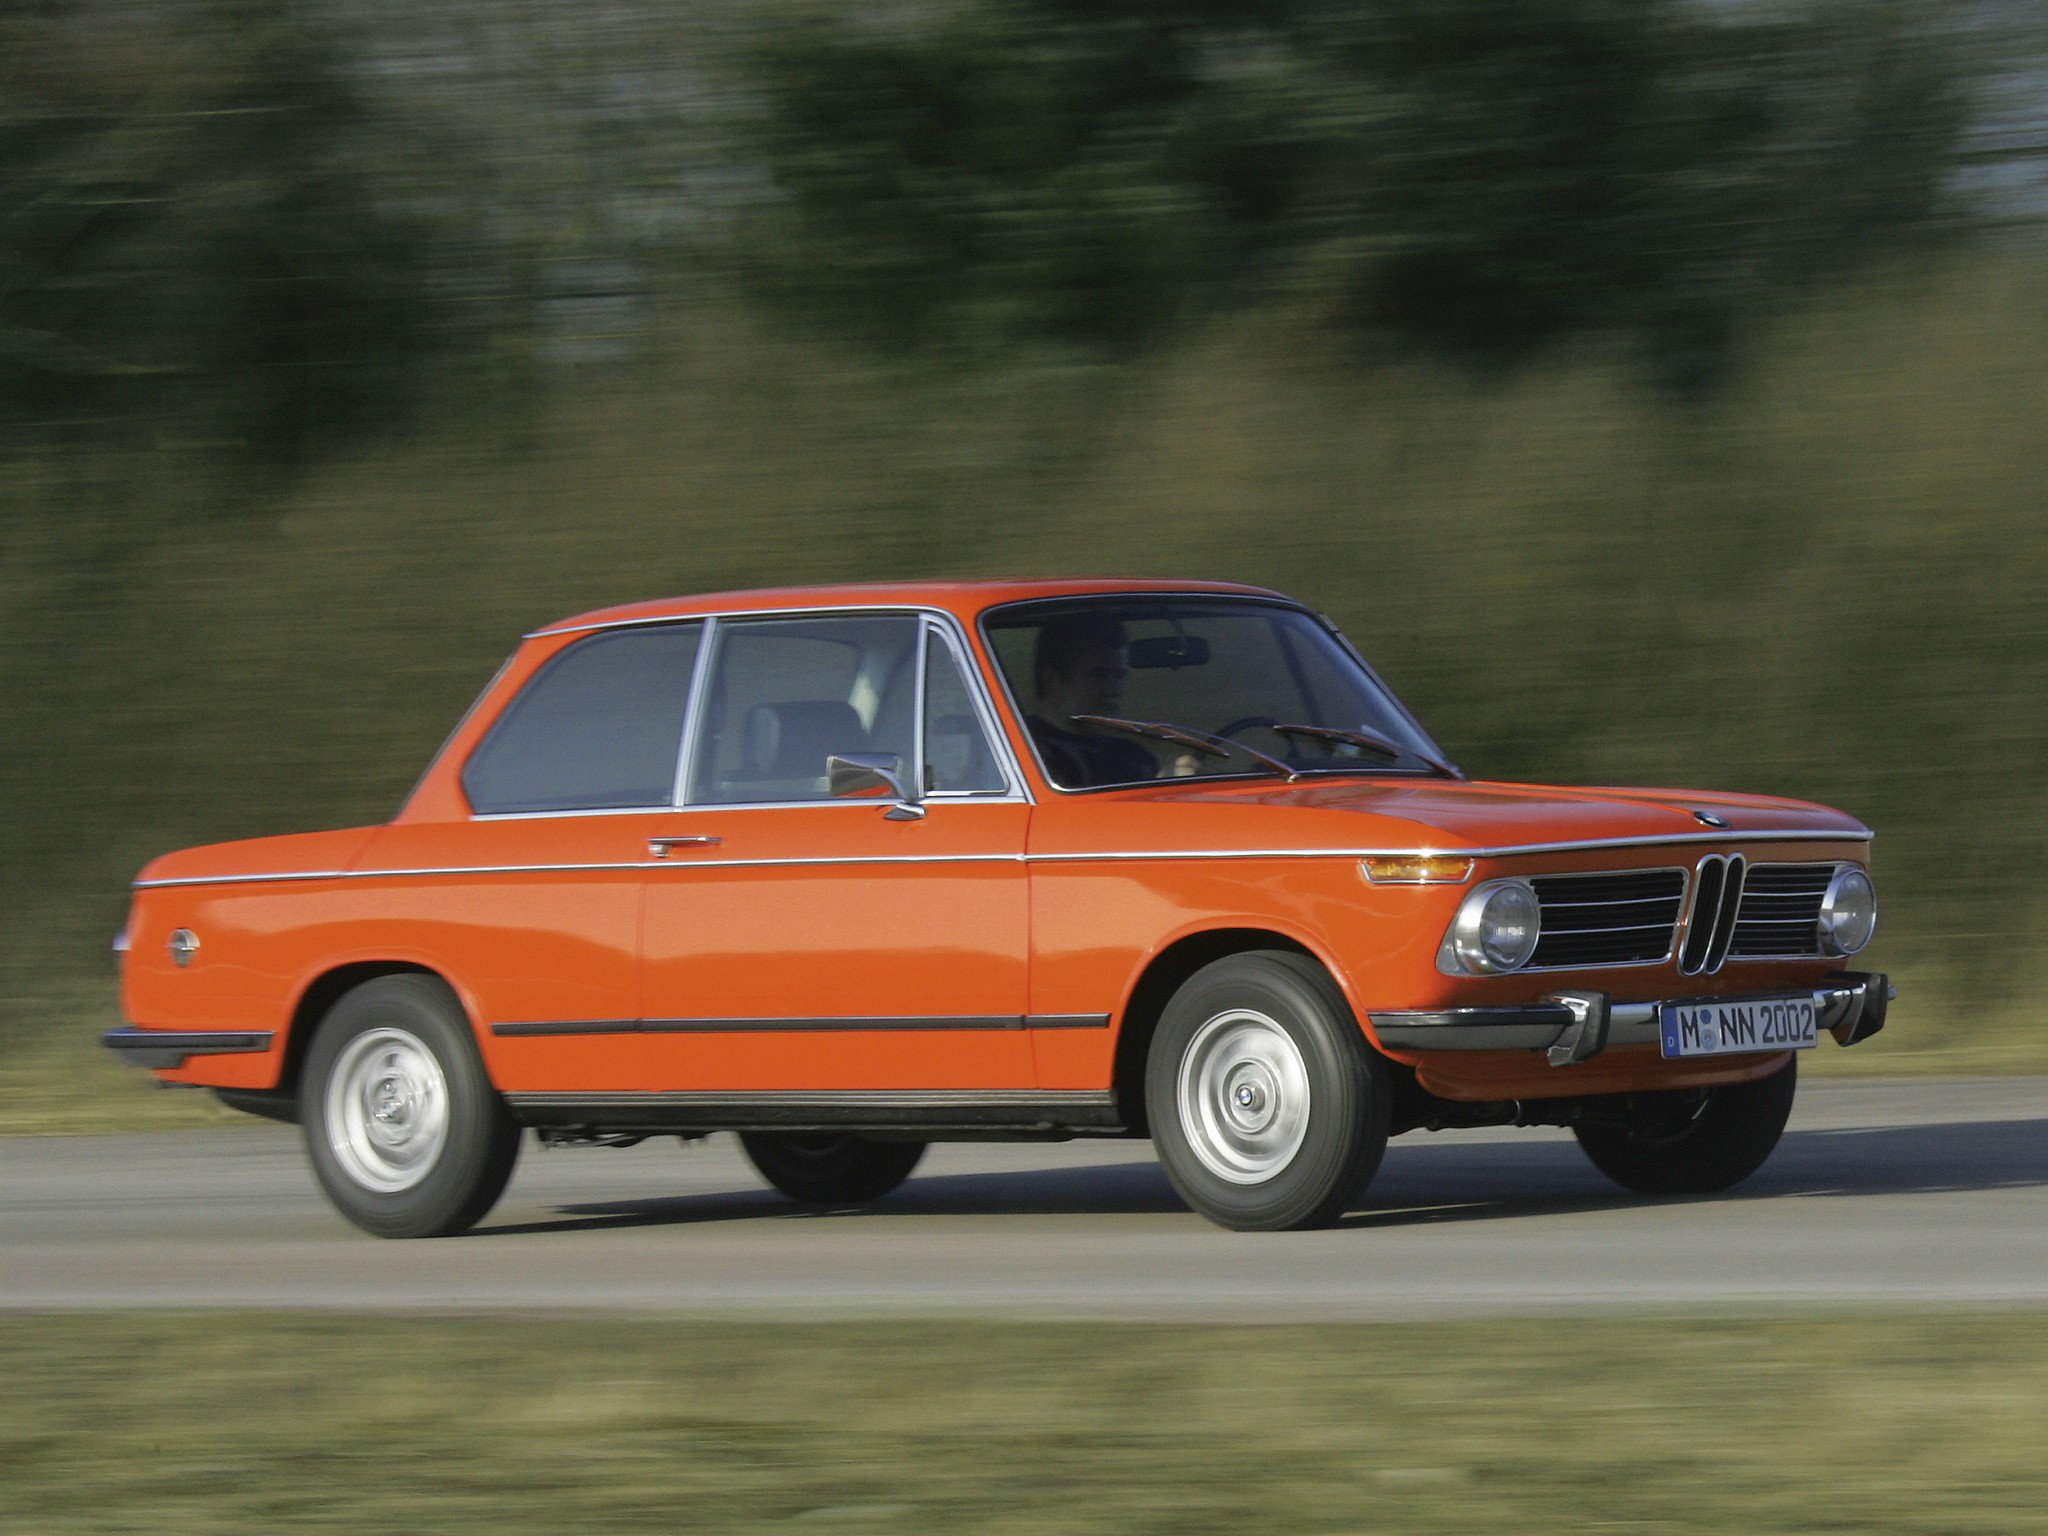 Performance Auto Body >> BMW 2002 specs & photos - 1968, 1969, 1970, 1971, 1972, 1973, 1974, 1975 - autoevolution